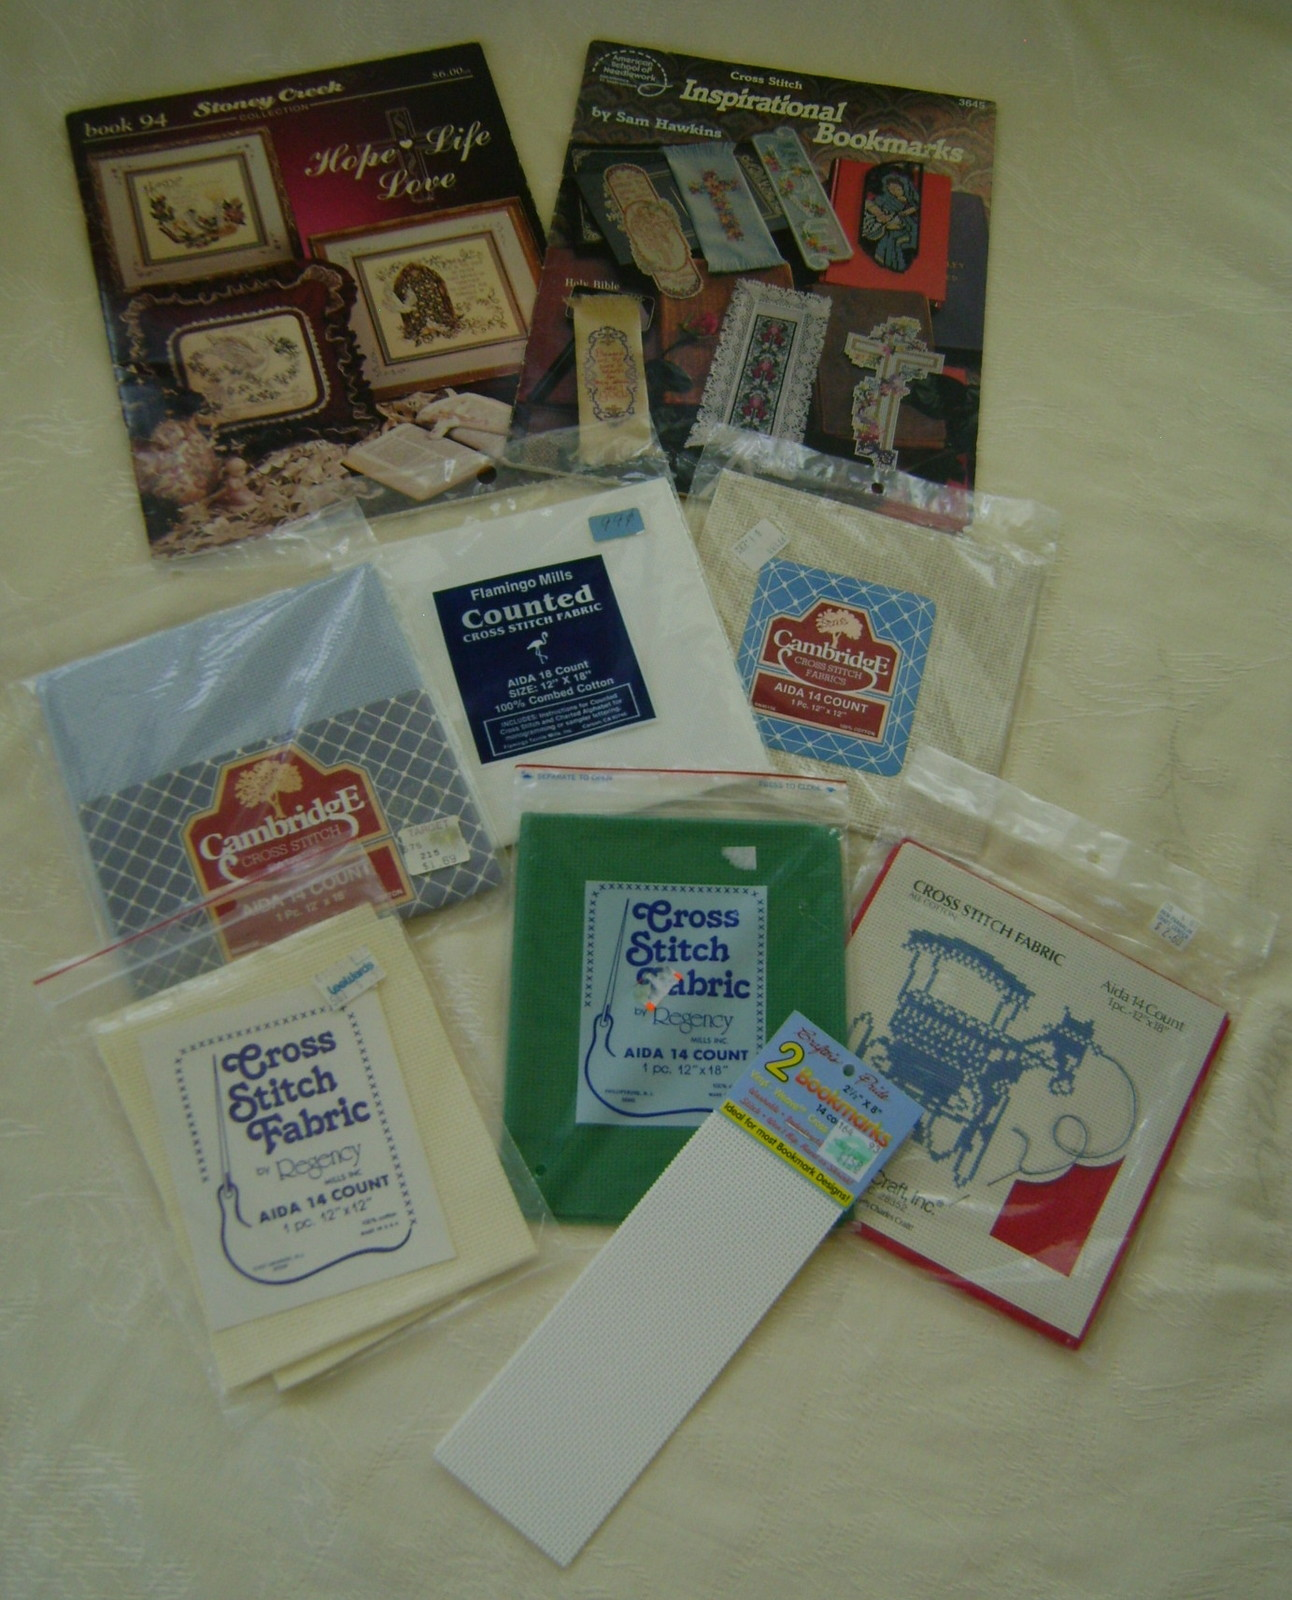 Pattern Kit Bookmarks - 2 Books Bookmarks & Samplers, 6 Packages Aida Cloth